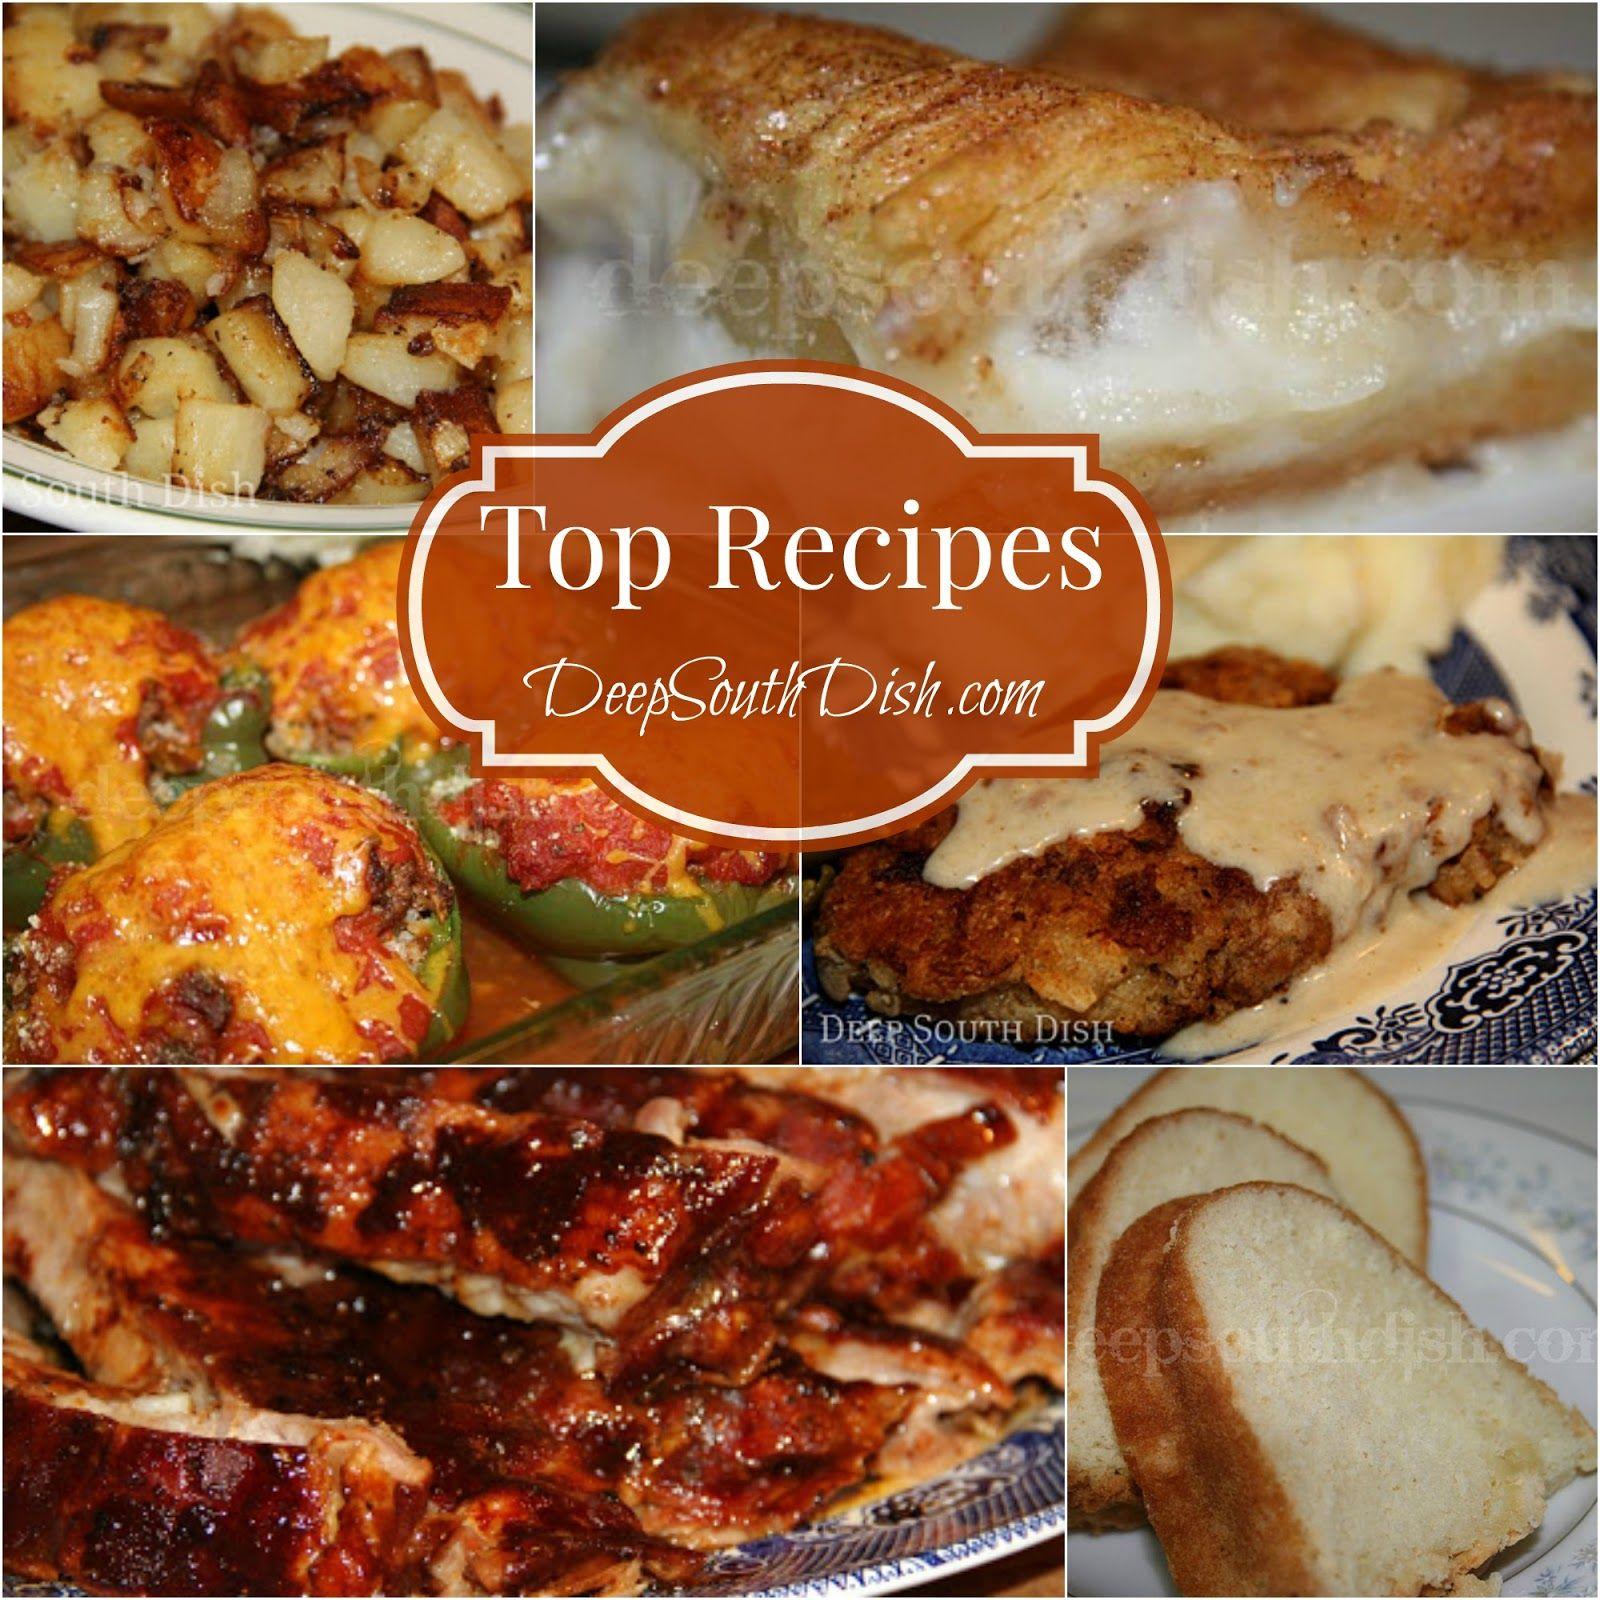 Top Recipes Roundup from Deep South Dish | Recipes